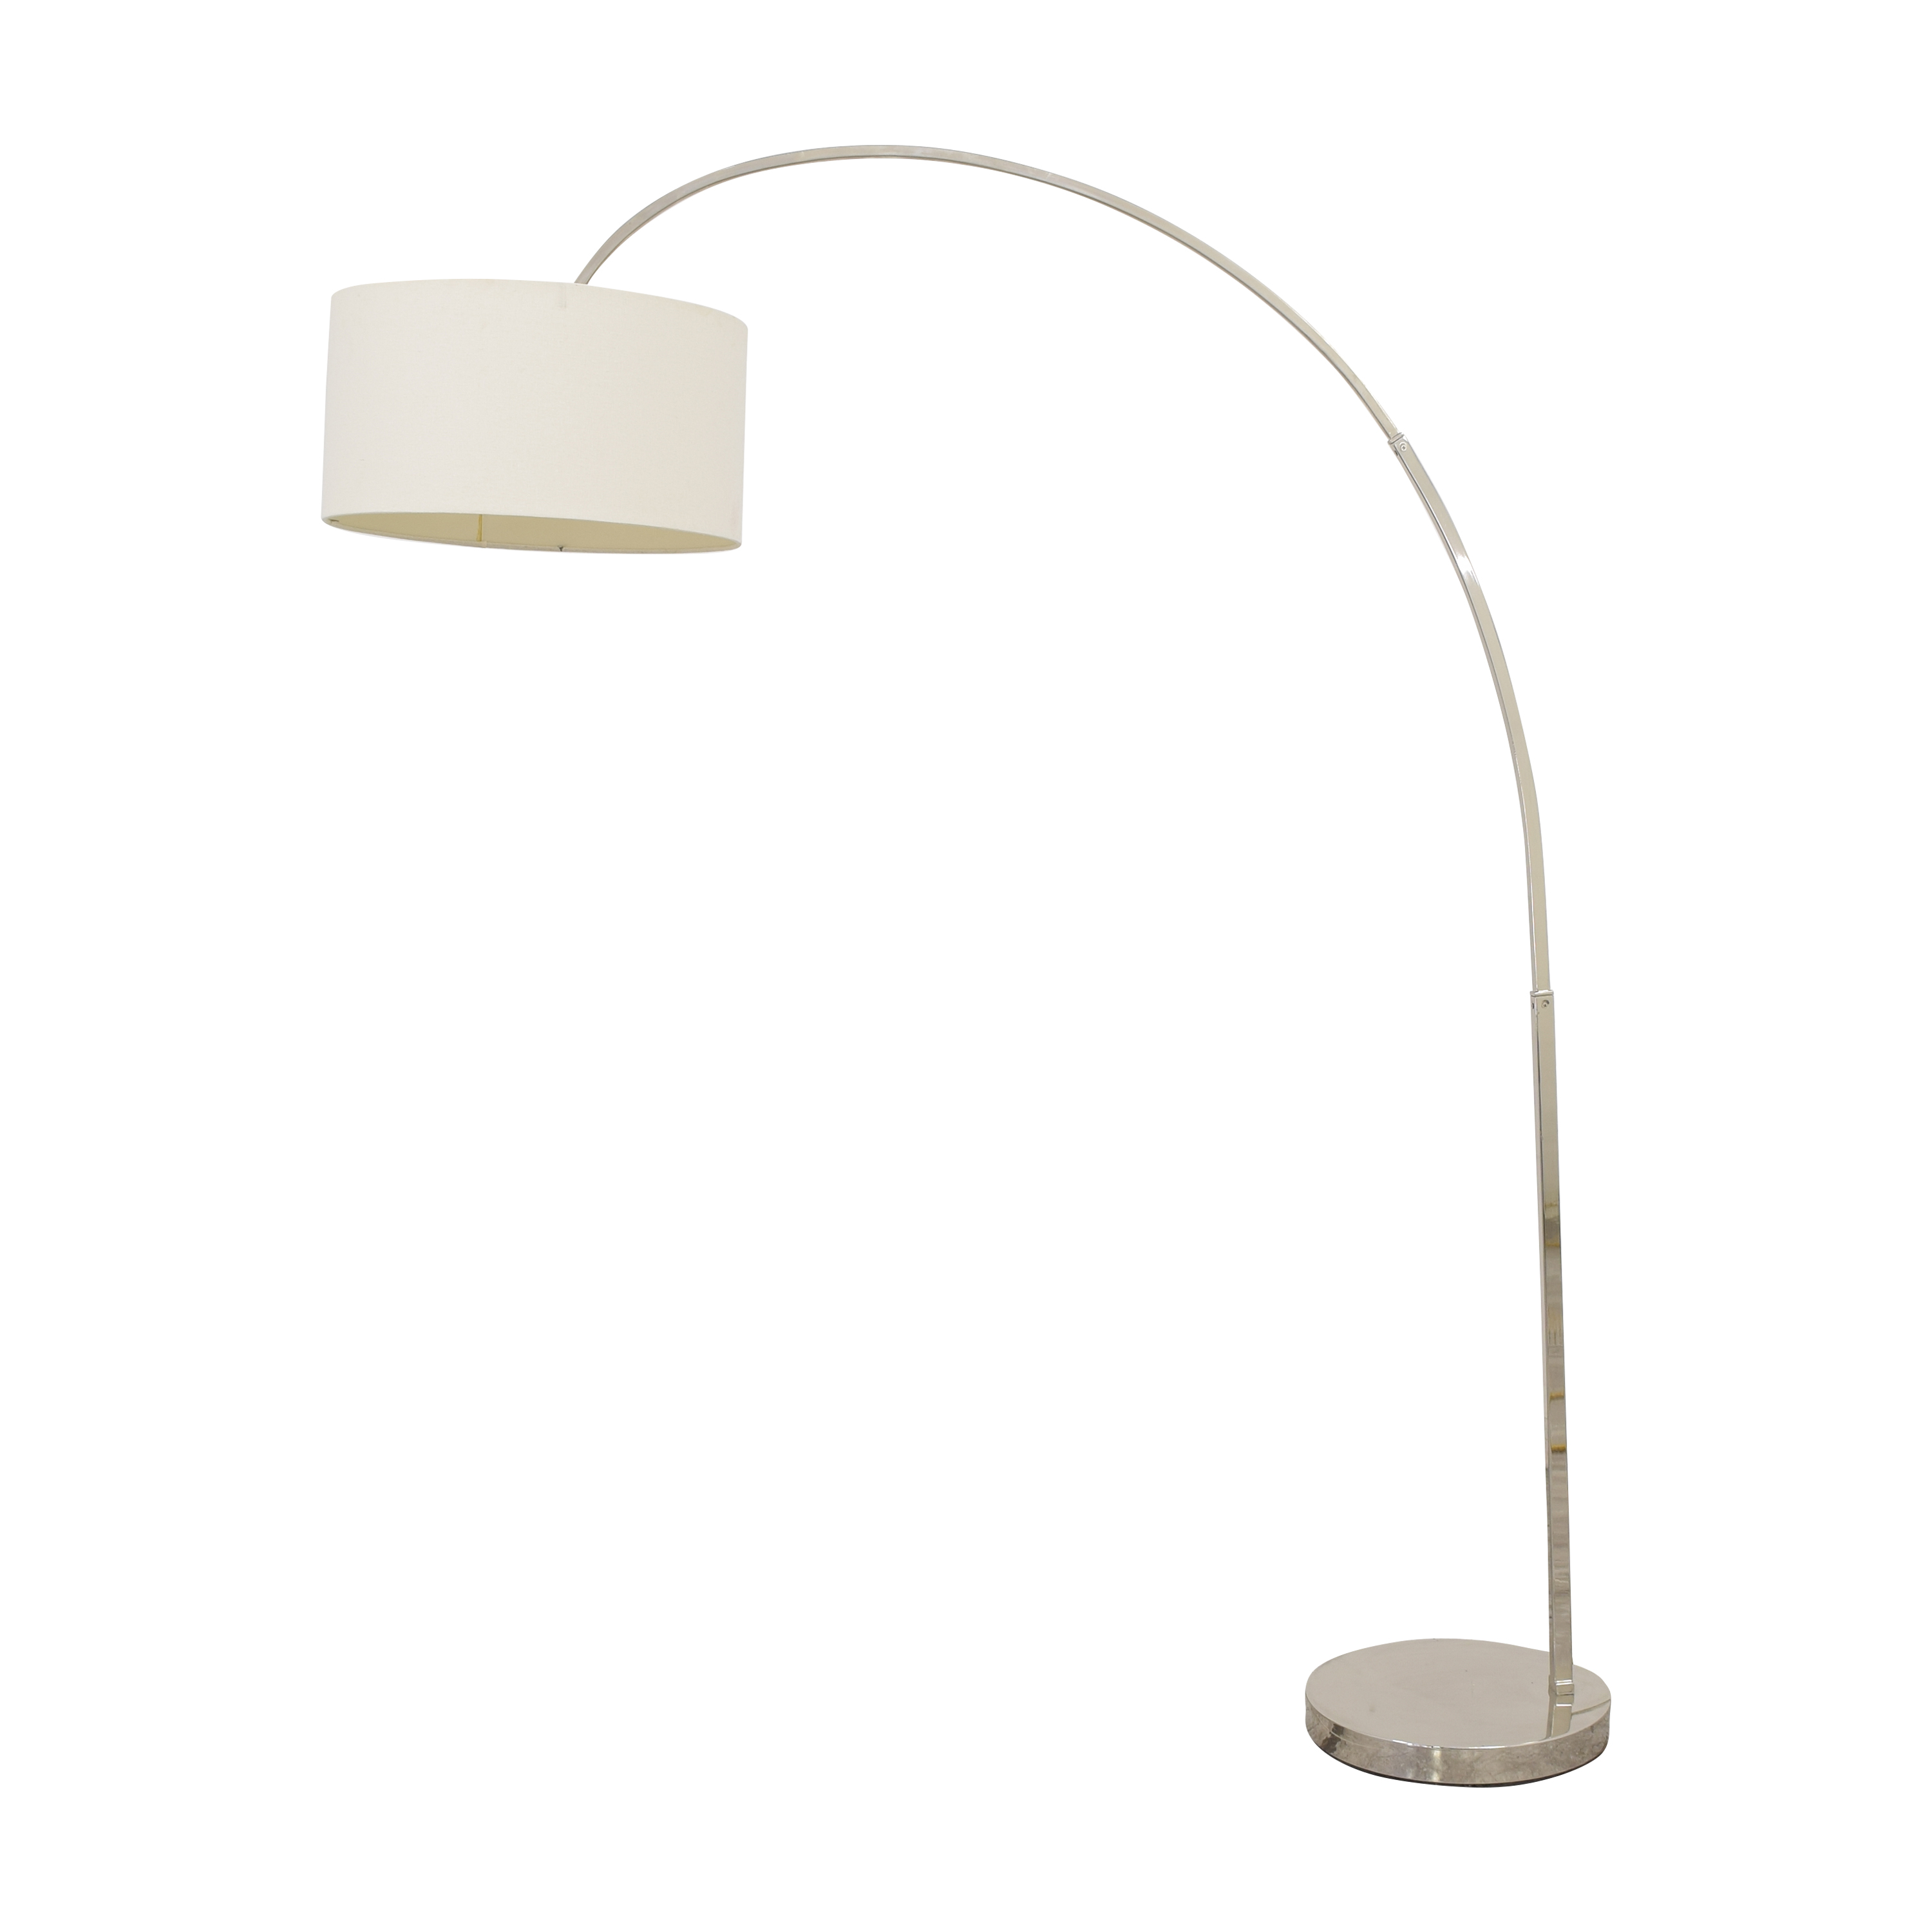 West Elm West Elm Overarching Floor Lamp pa